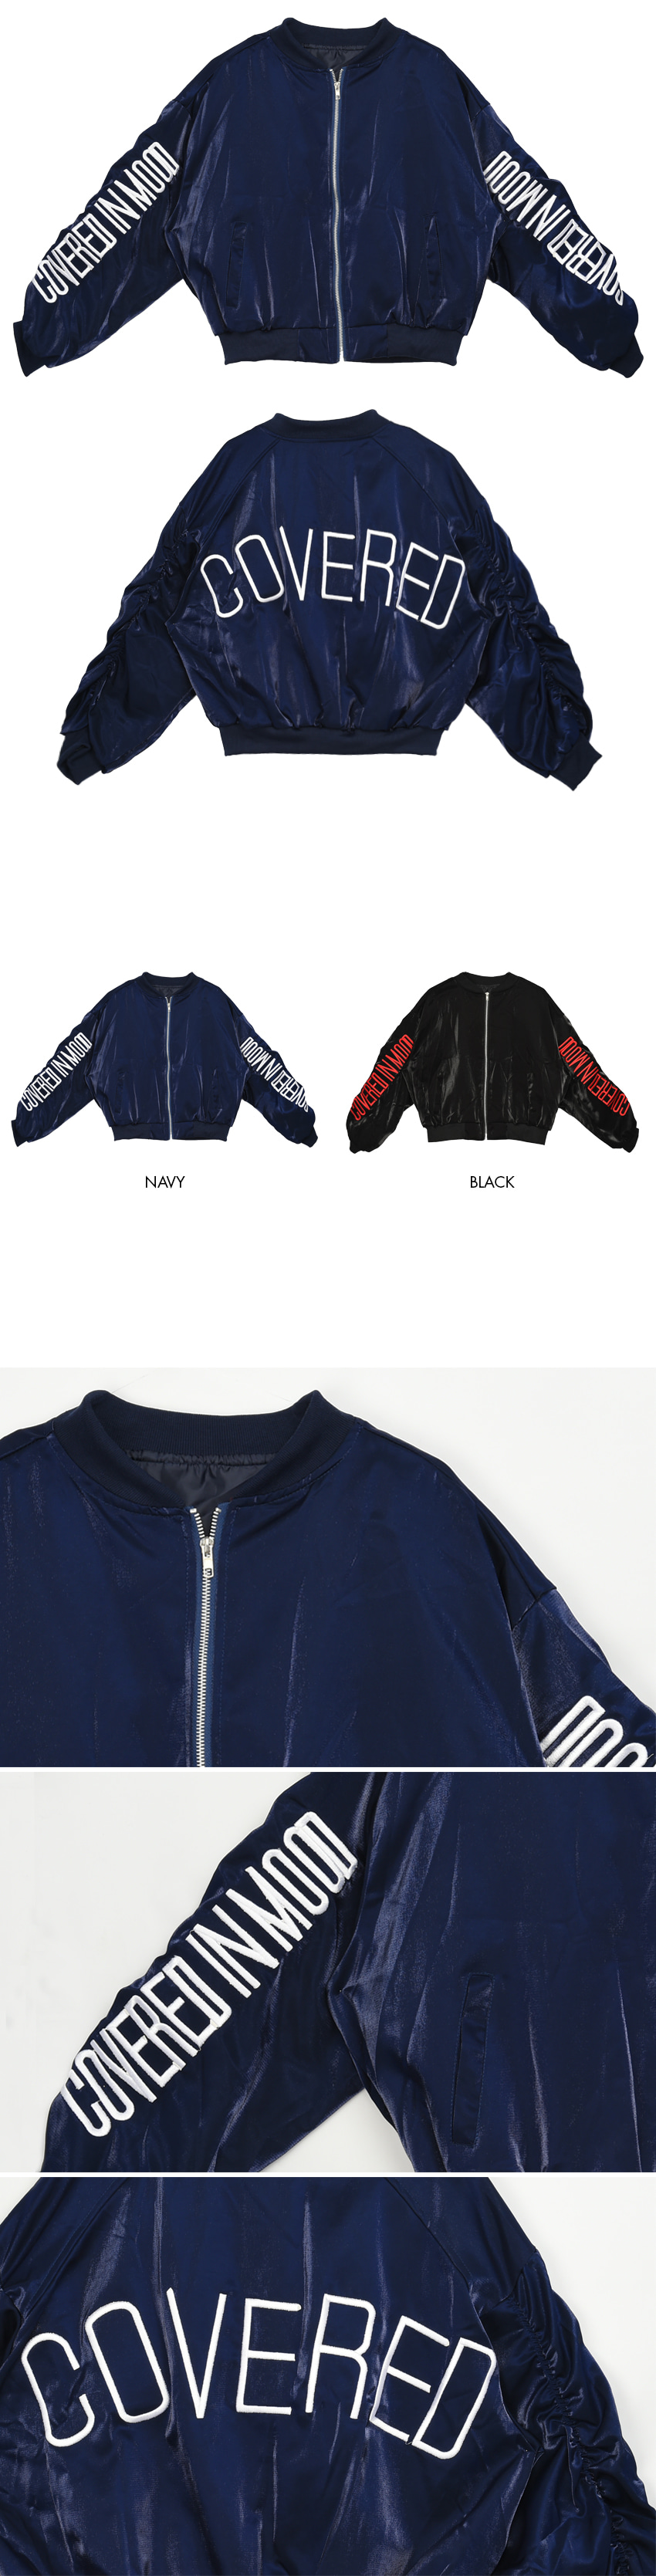 Cover-down jackets